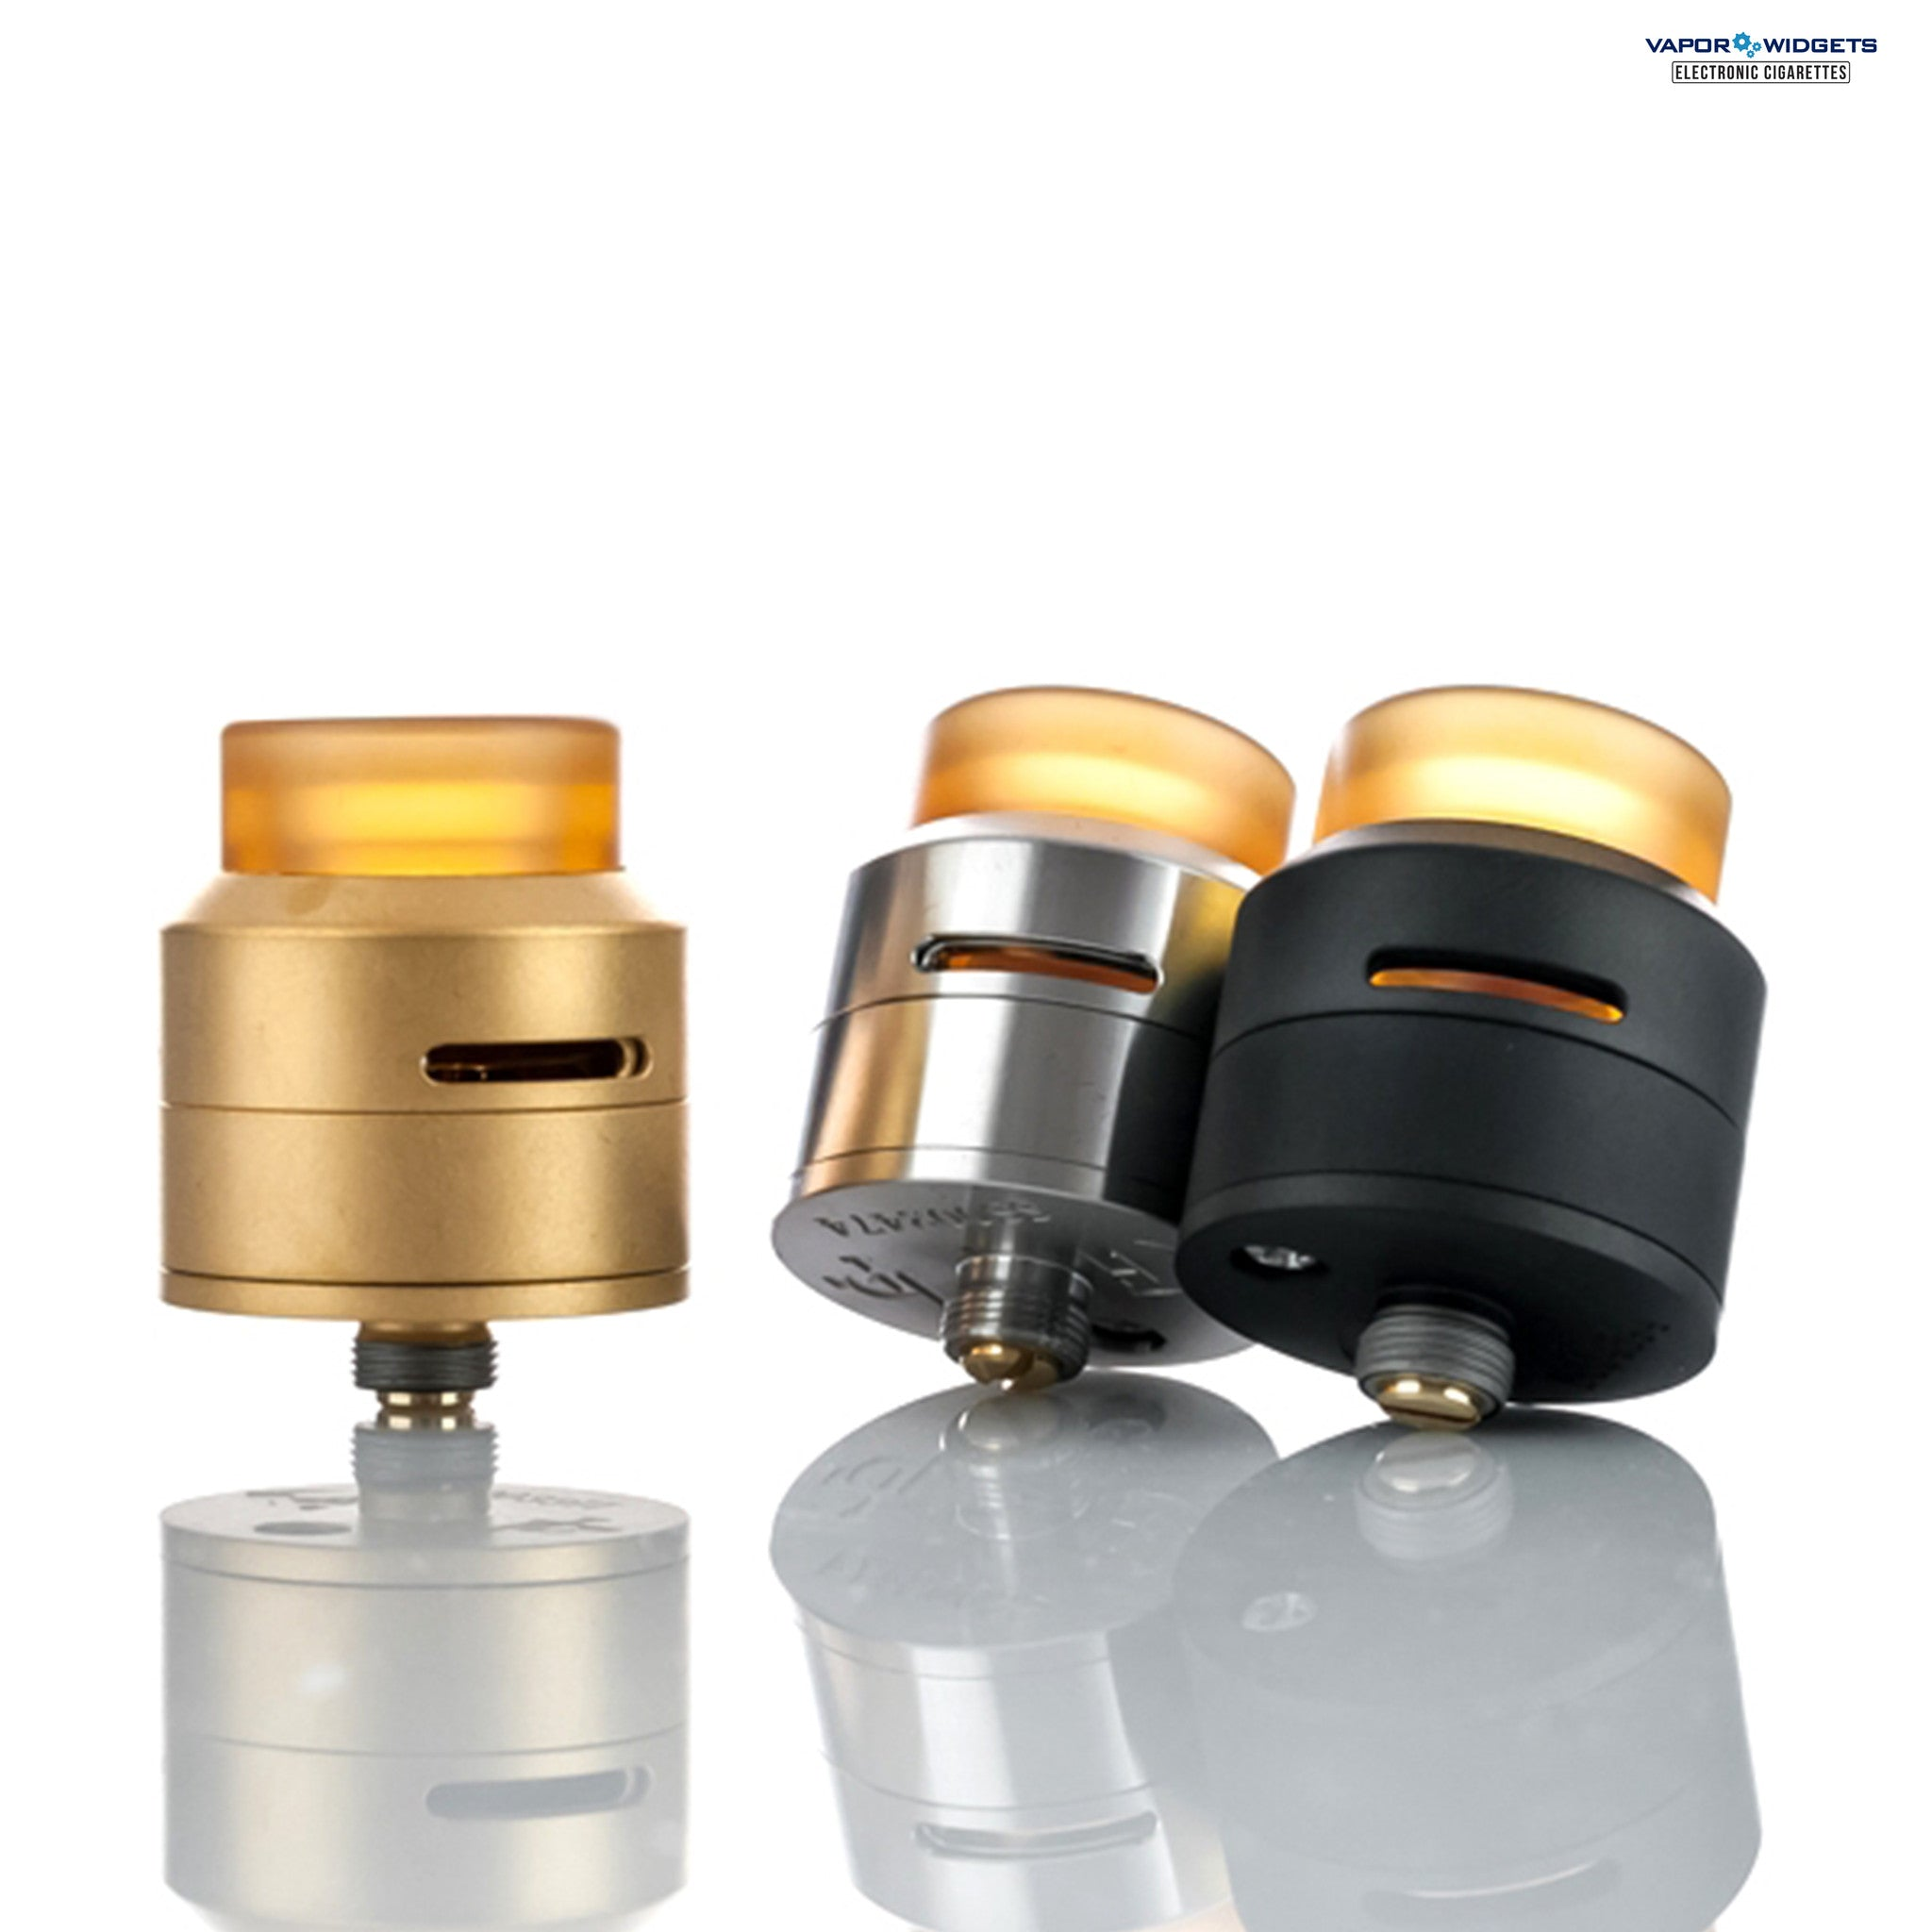 Authentic Goon LP Rebuildable Dripping Atomizer RDA | Vapor Widgets